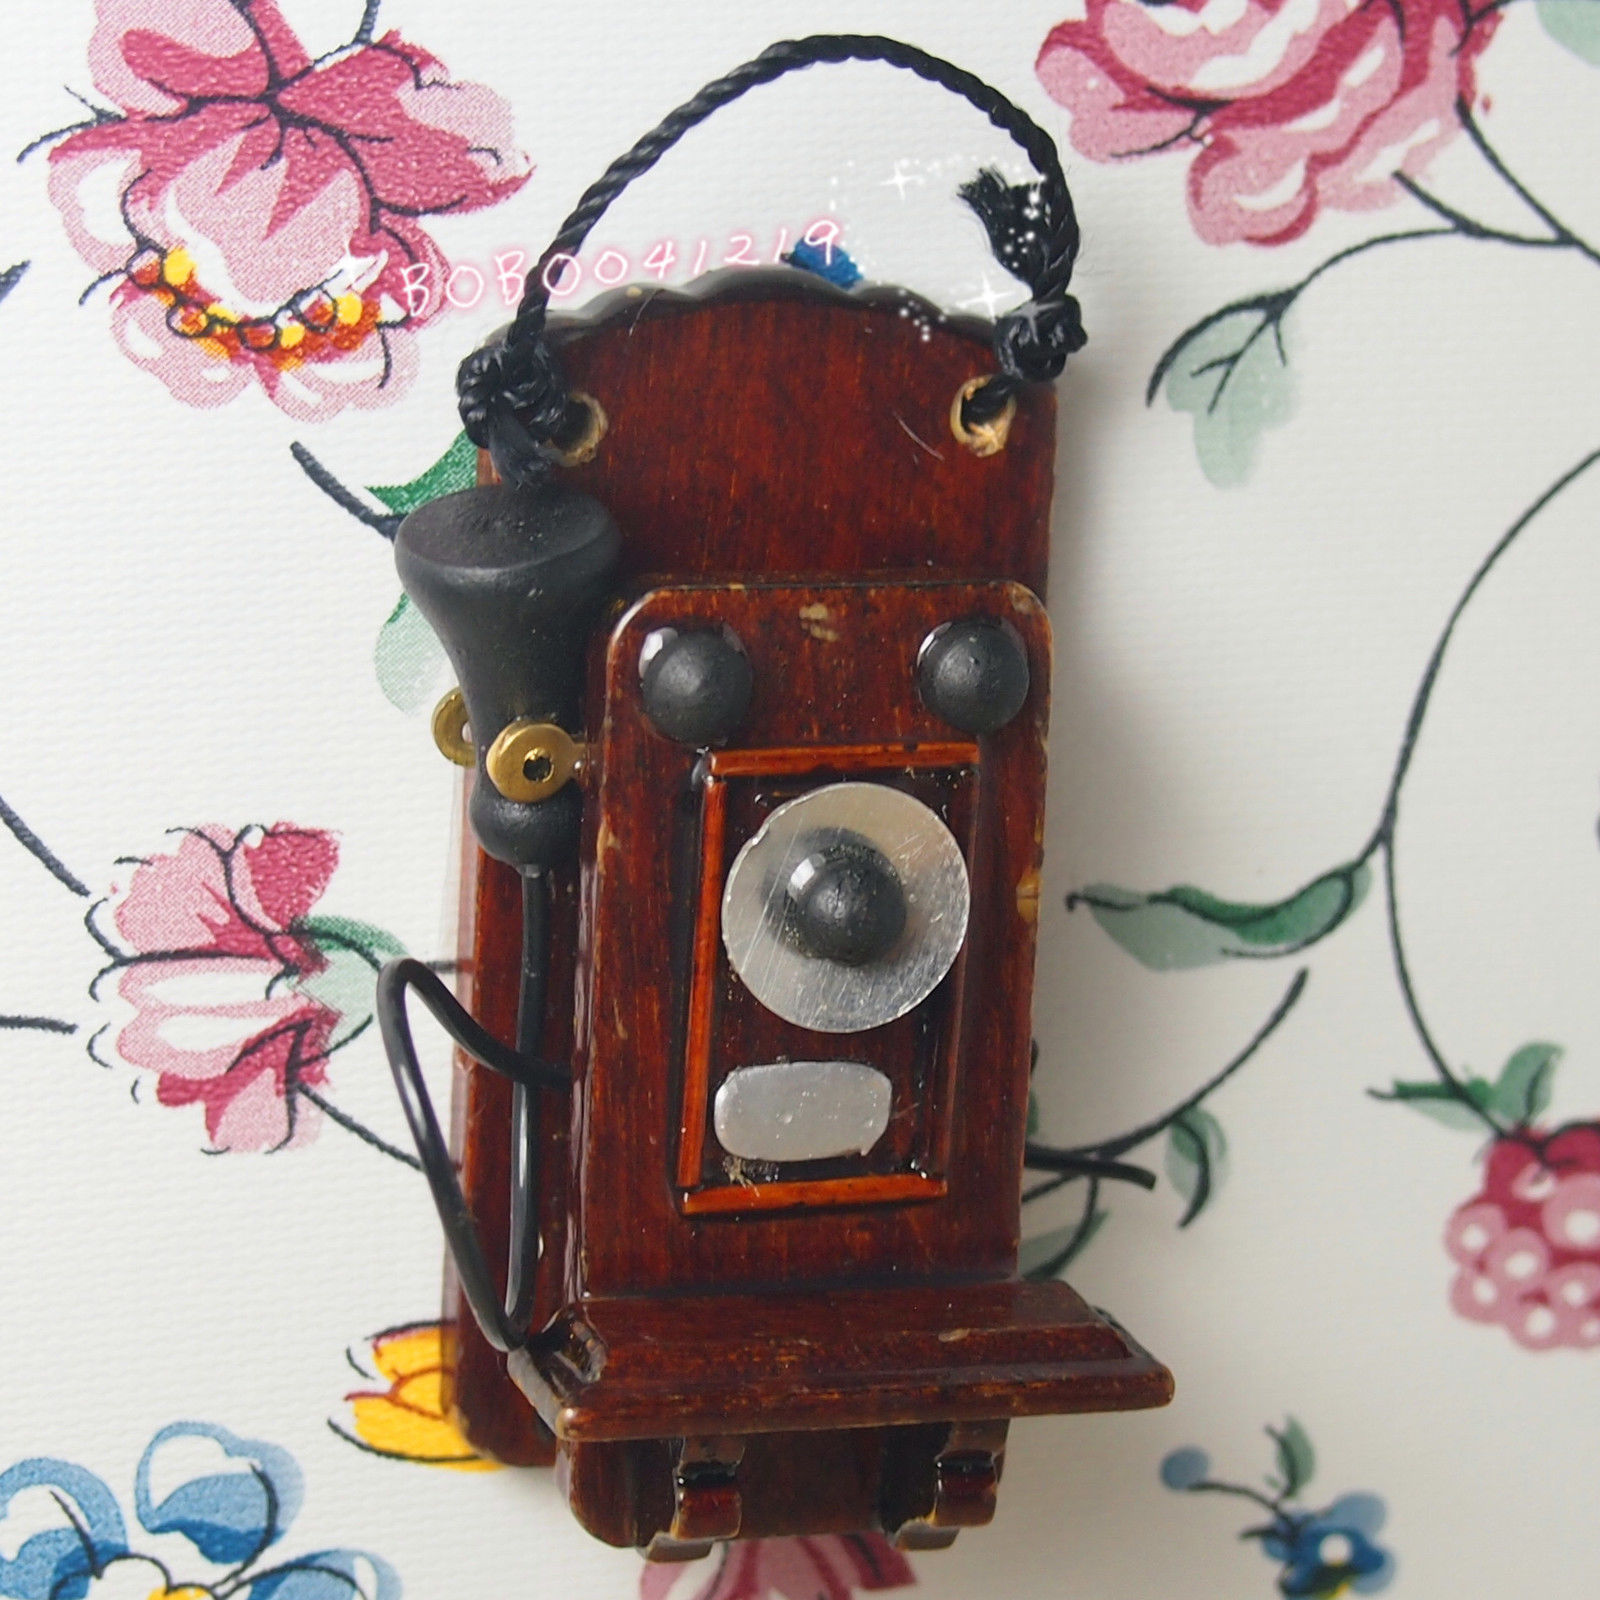 Dollhouse Miniature 1:12 Toy Living Room A Vintage Wooden Wall Telephone RL1330(China (Mainland))